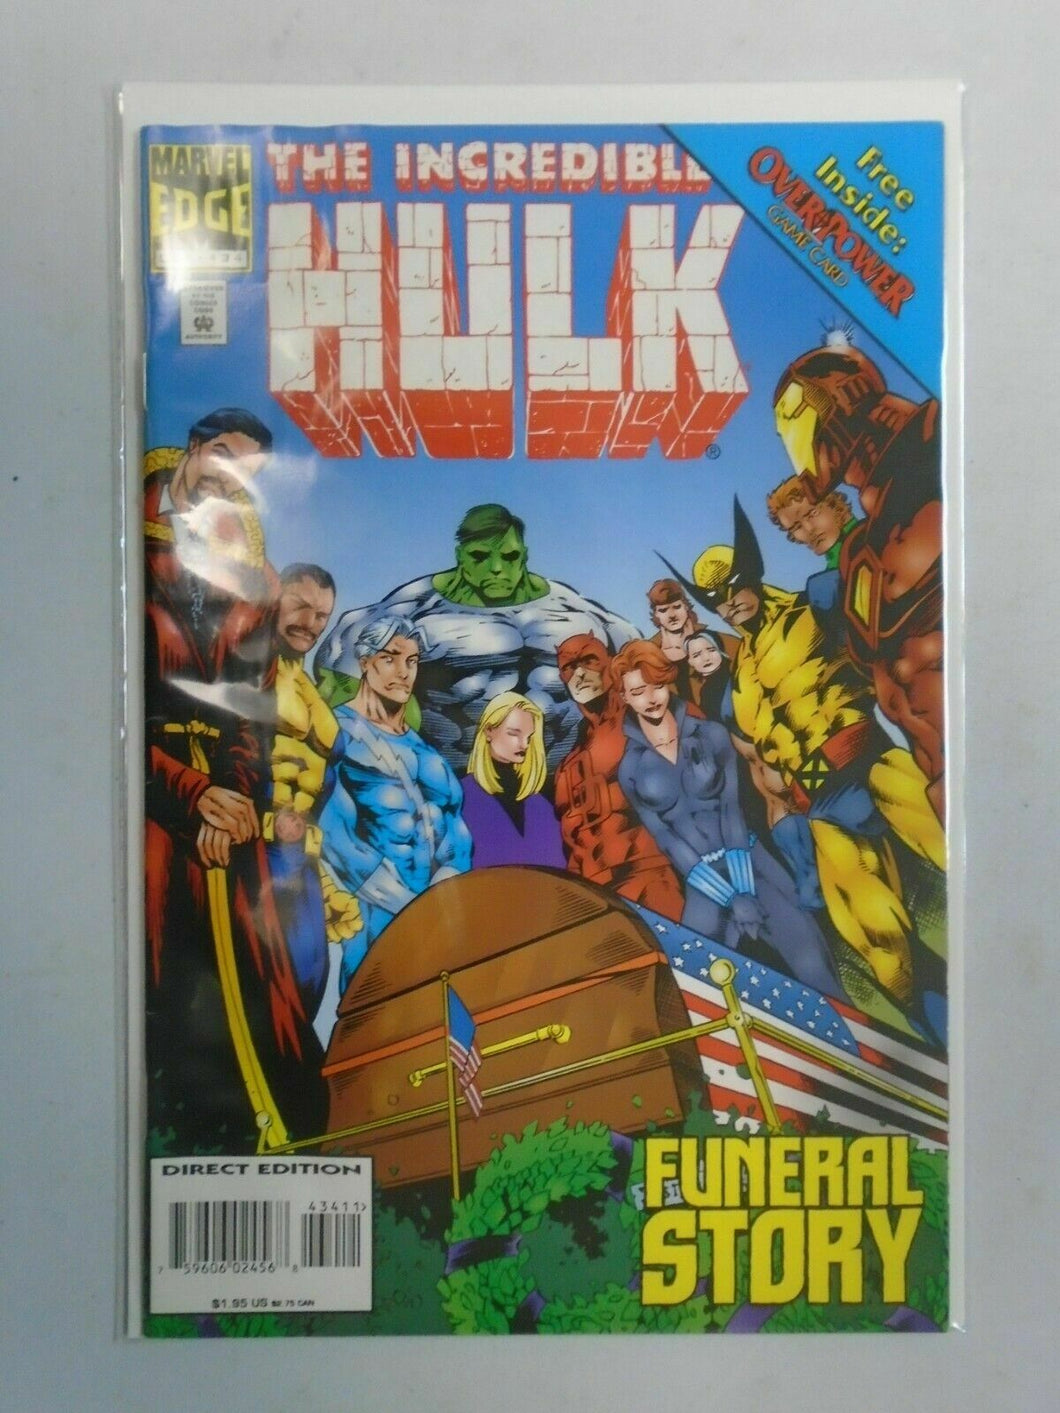 Incredible Hulk #434 4.0 VG water damaged (1995 1st Series)